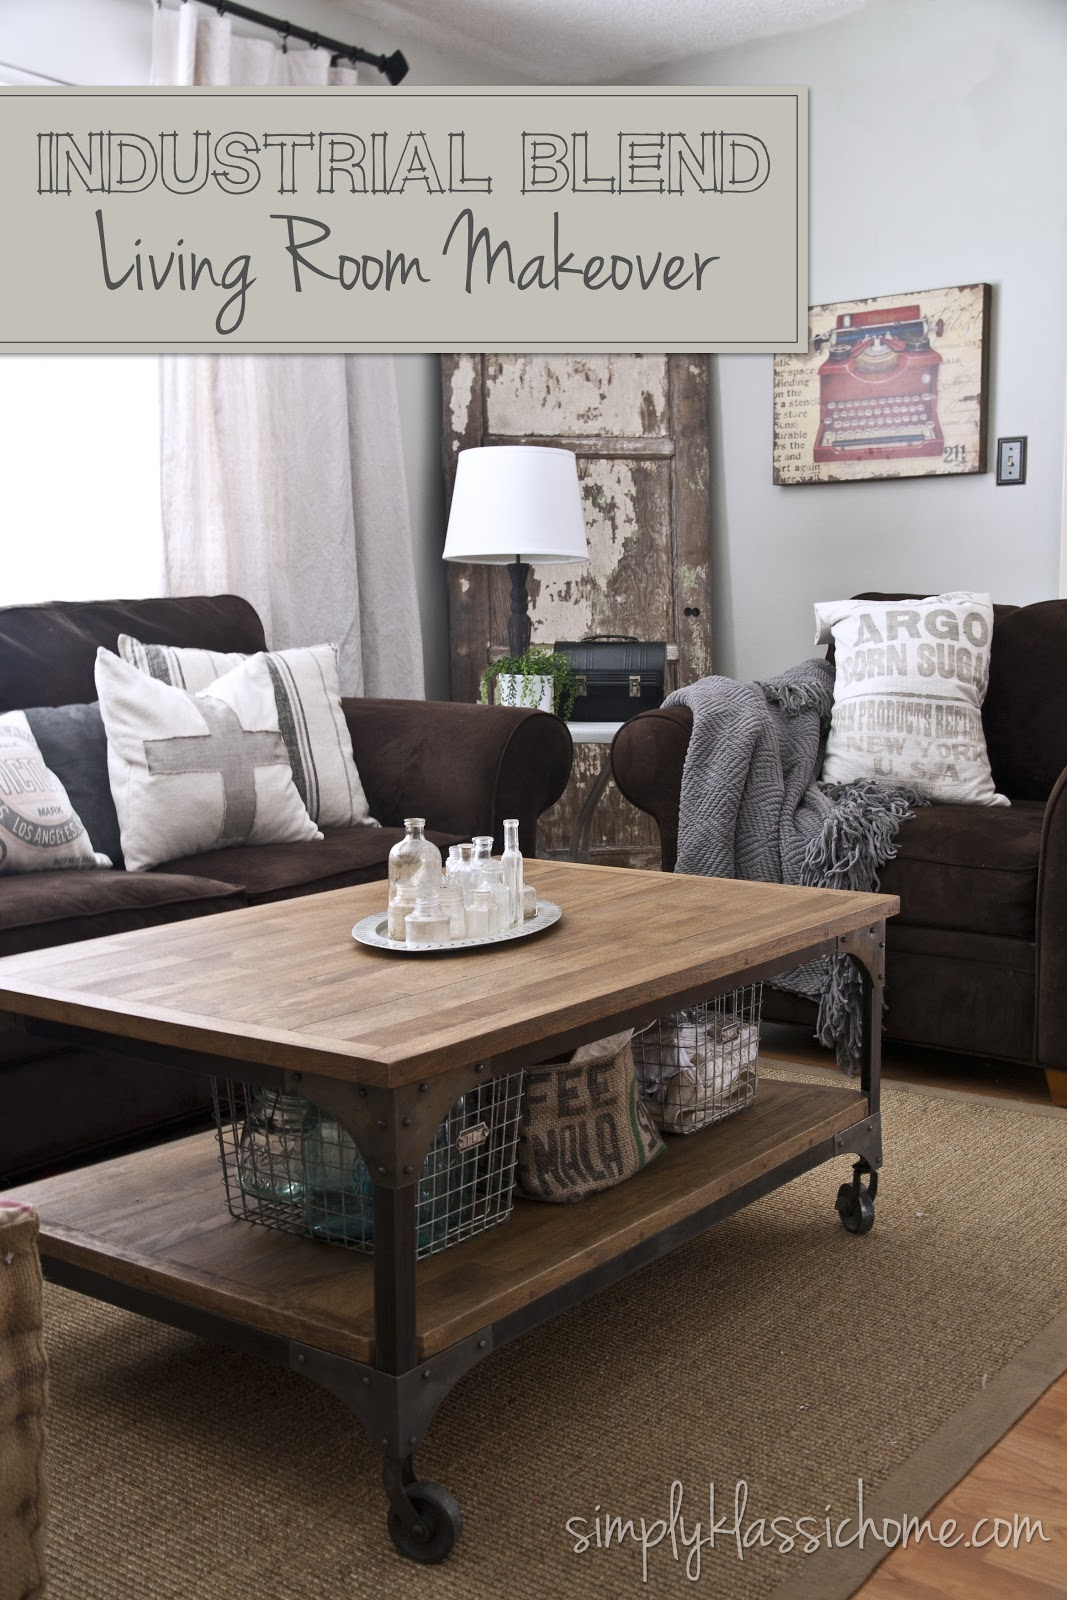 Industrial Blend Living Room Makeover Reveal - Yellow Bliss Road